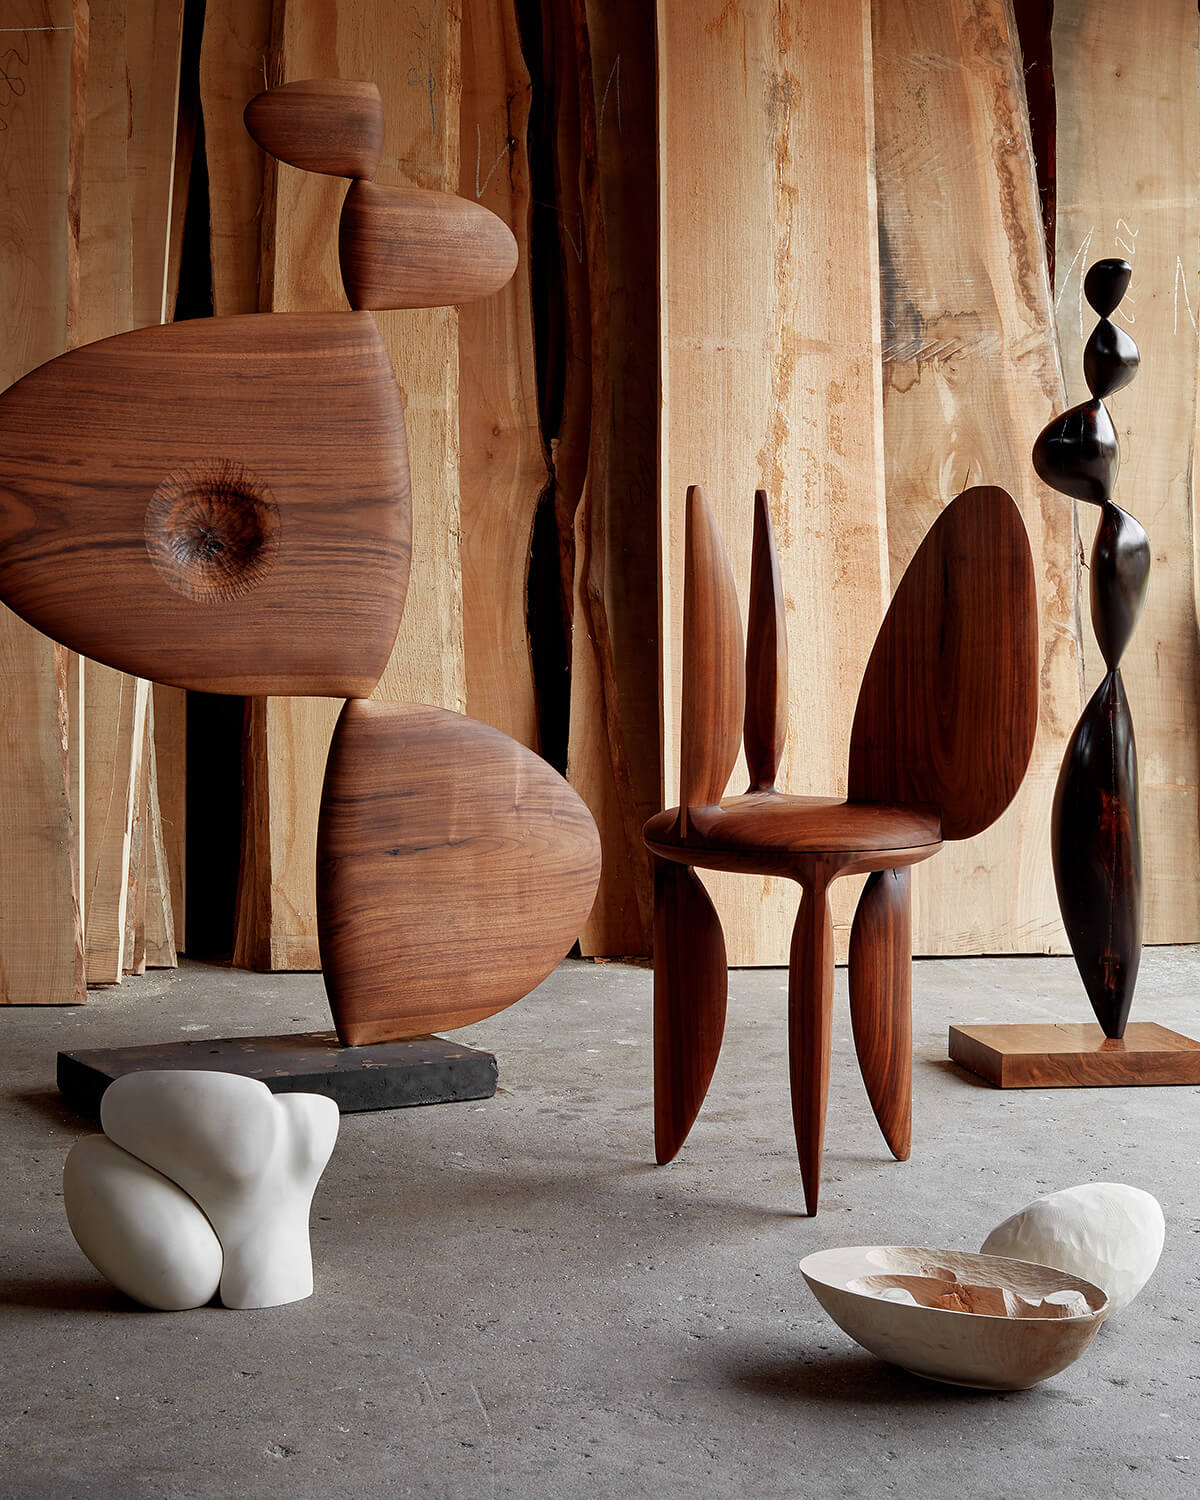 Wooden masterpieces by Nicholas Shurey | Nicholas Shurey | 10 wood sculptors you should know | STIRworld